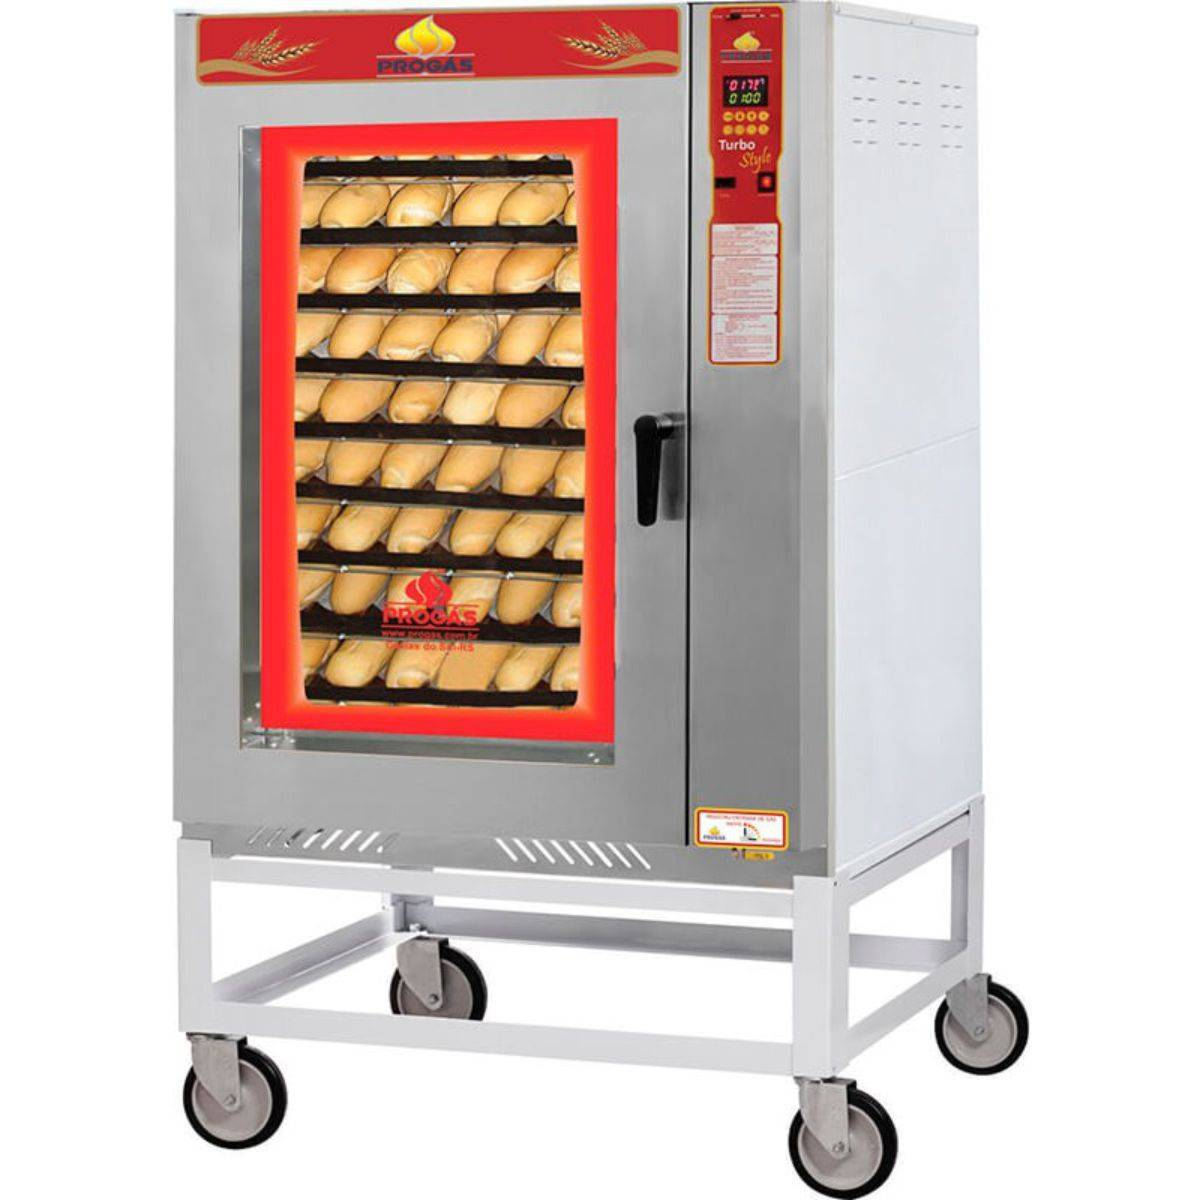 Forno Turbo a Gás 8 Esteiras PRP-8000 Progás - Magazine do Chef